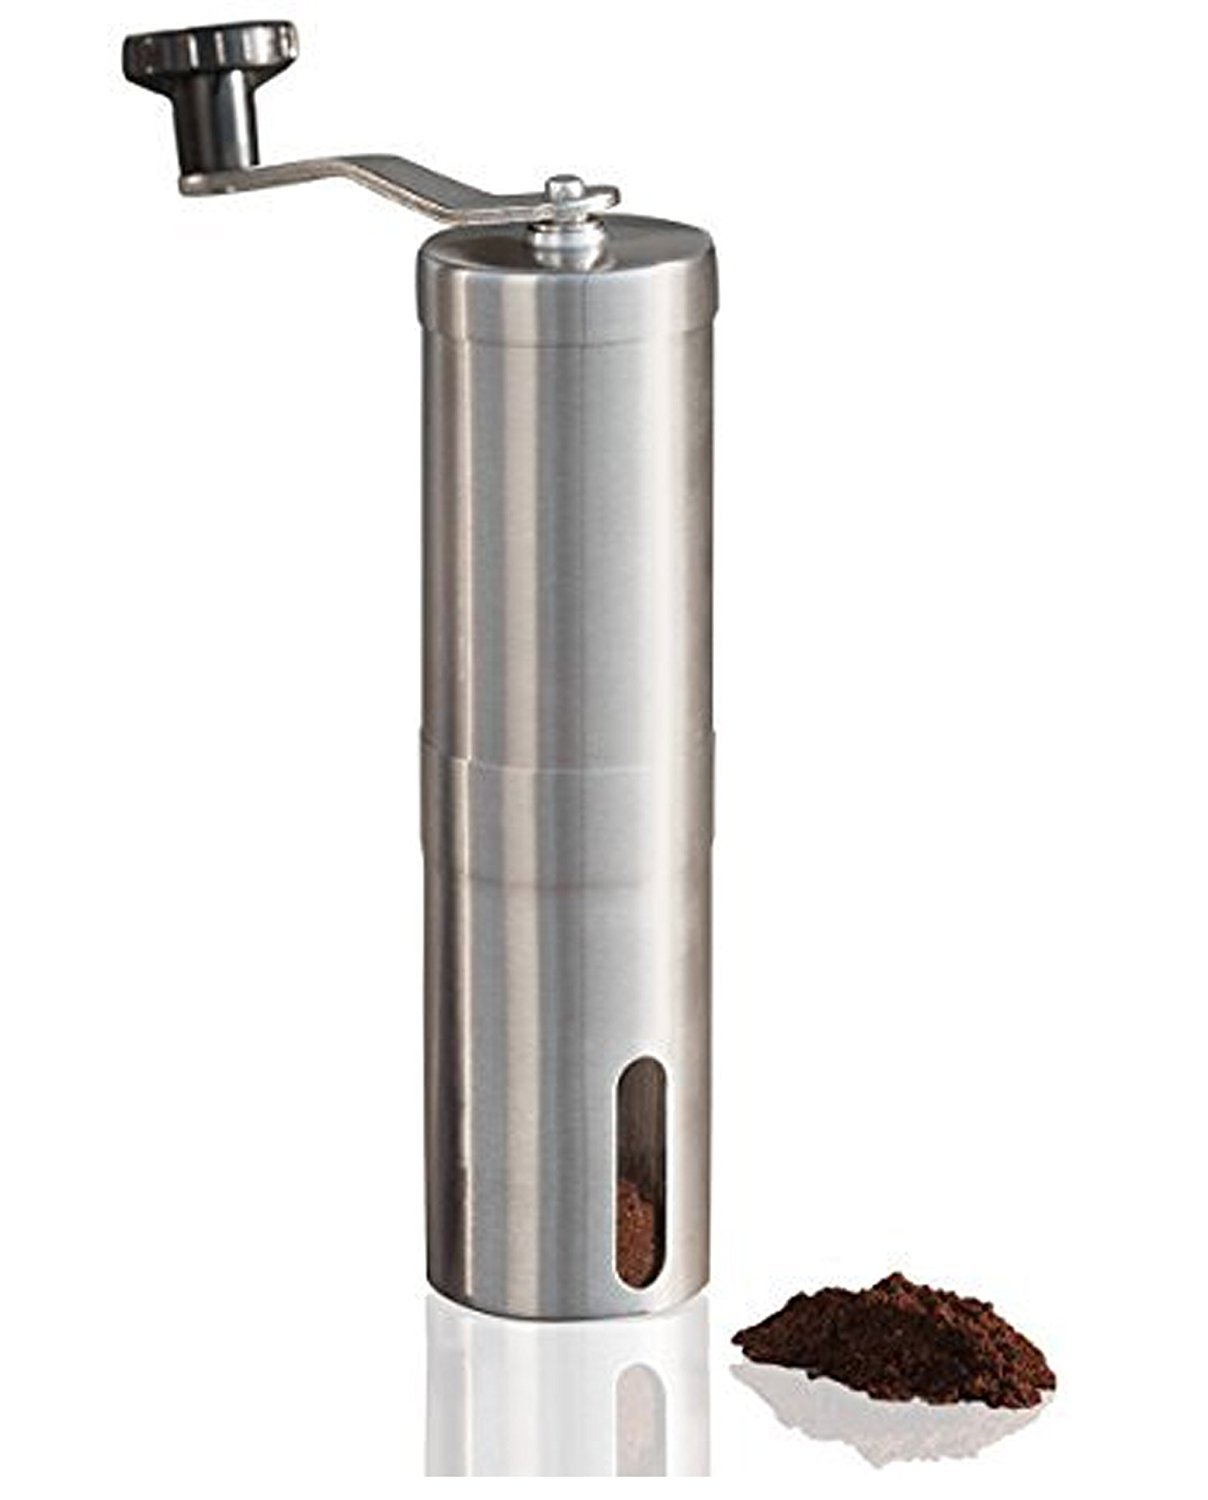 Coffee Makers,Manual Coffee Grinder,Conical Burr Mill,Portable Brushed Stainless Steel Hand Coffee Bean Grinder for Home,Traveling,Camping